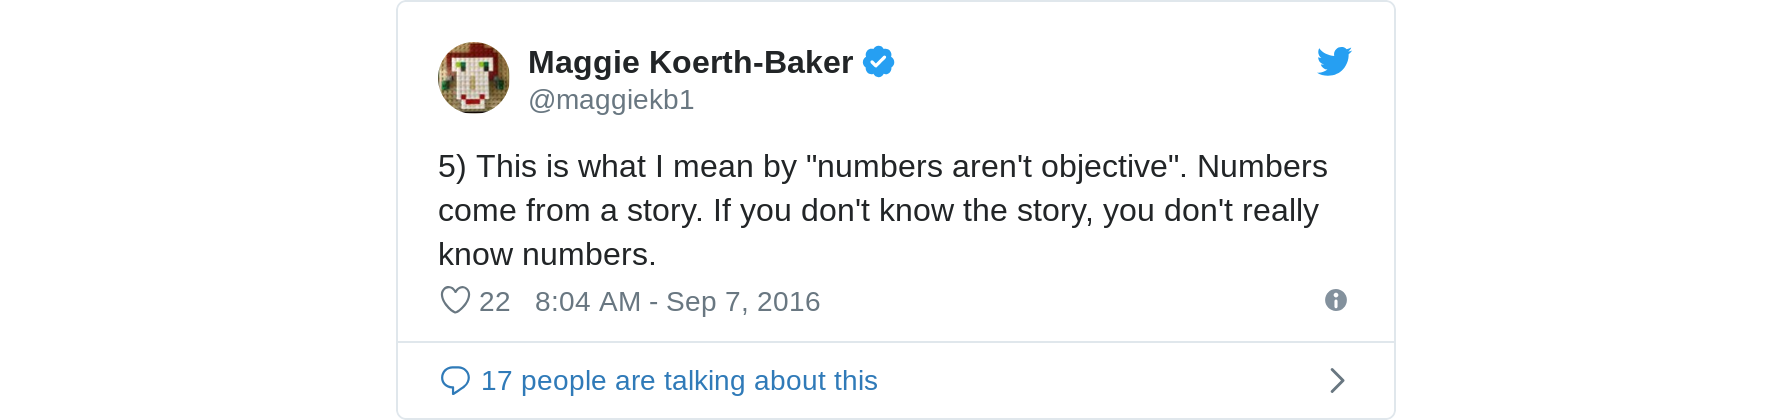 5) This is what I mean by 'numbers aren't objective'. Numbers come from a story. If you don't know the story, you don't really know numbers.